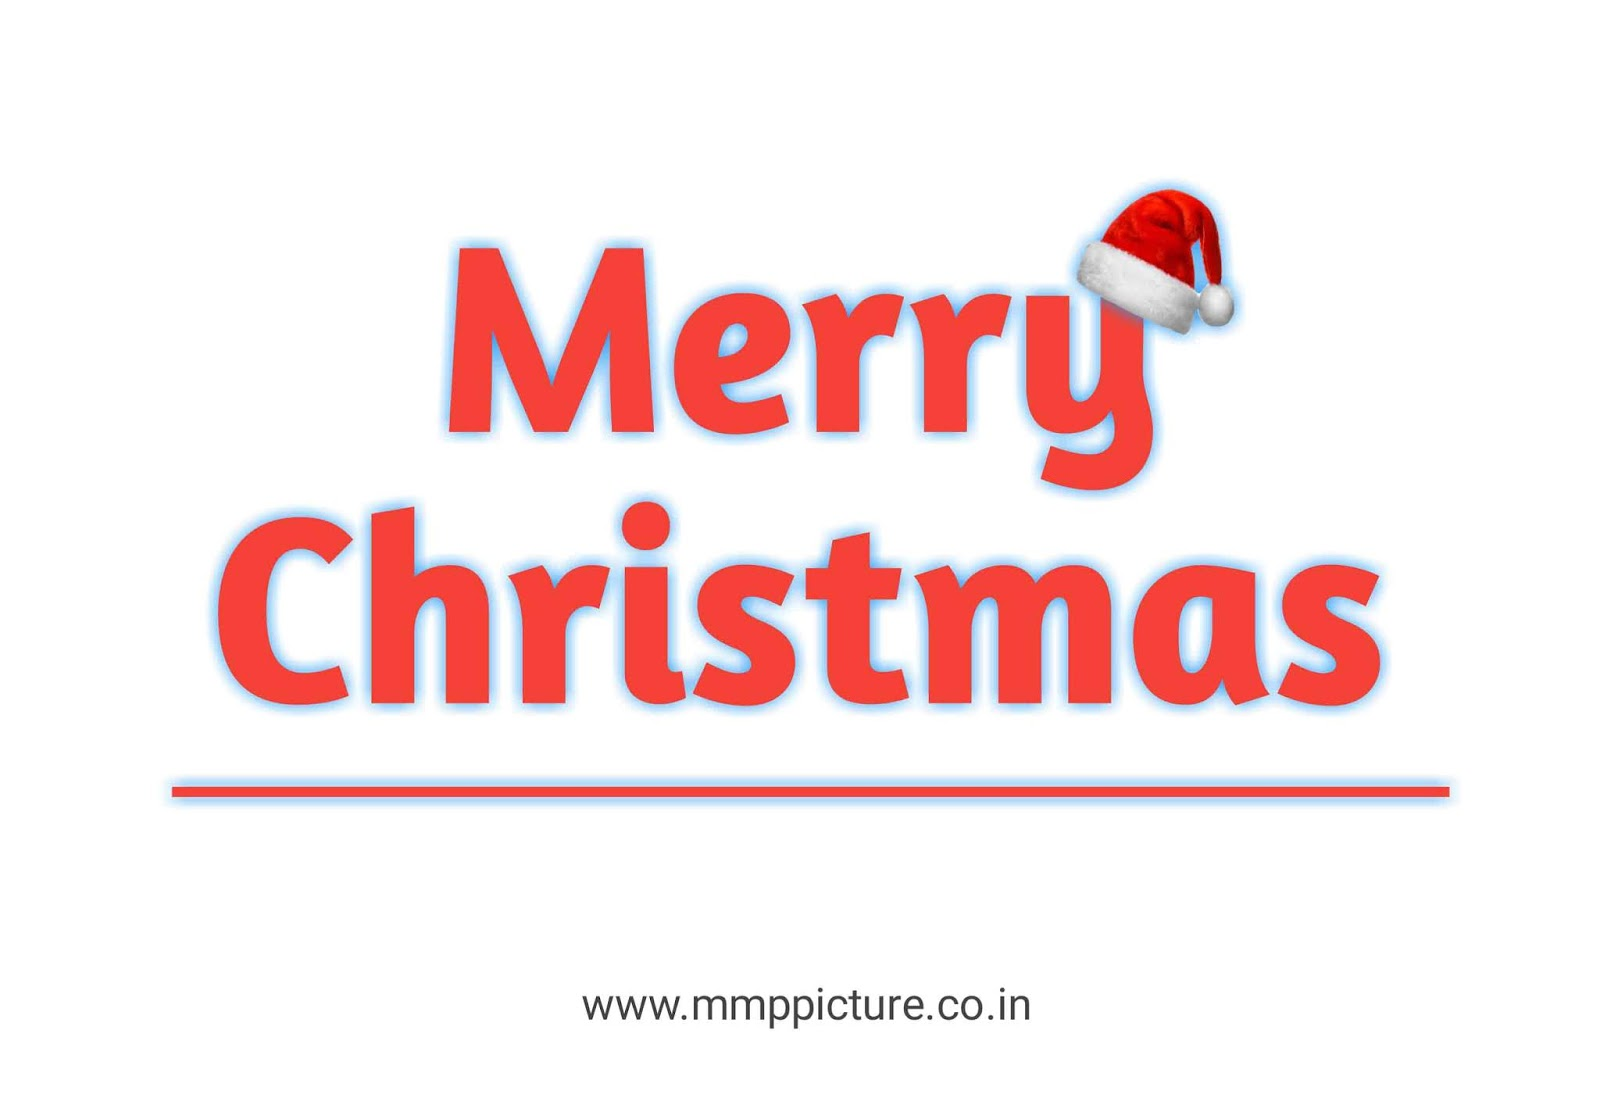 Brand New Christmas Stylish Text Png Download Mmp Picture